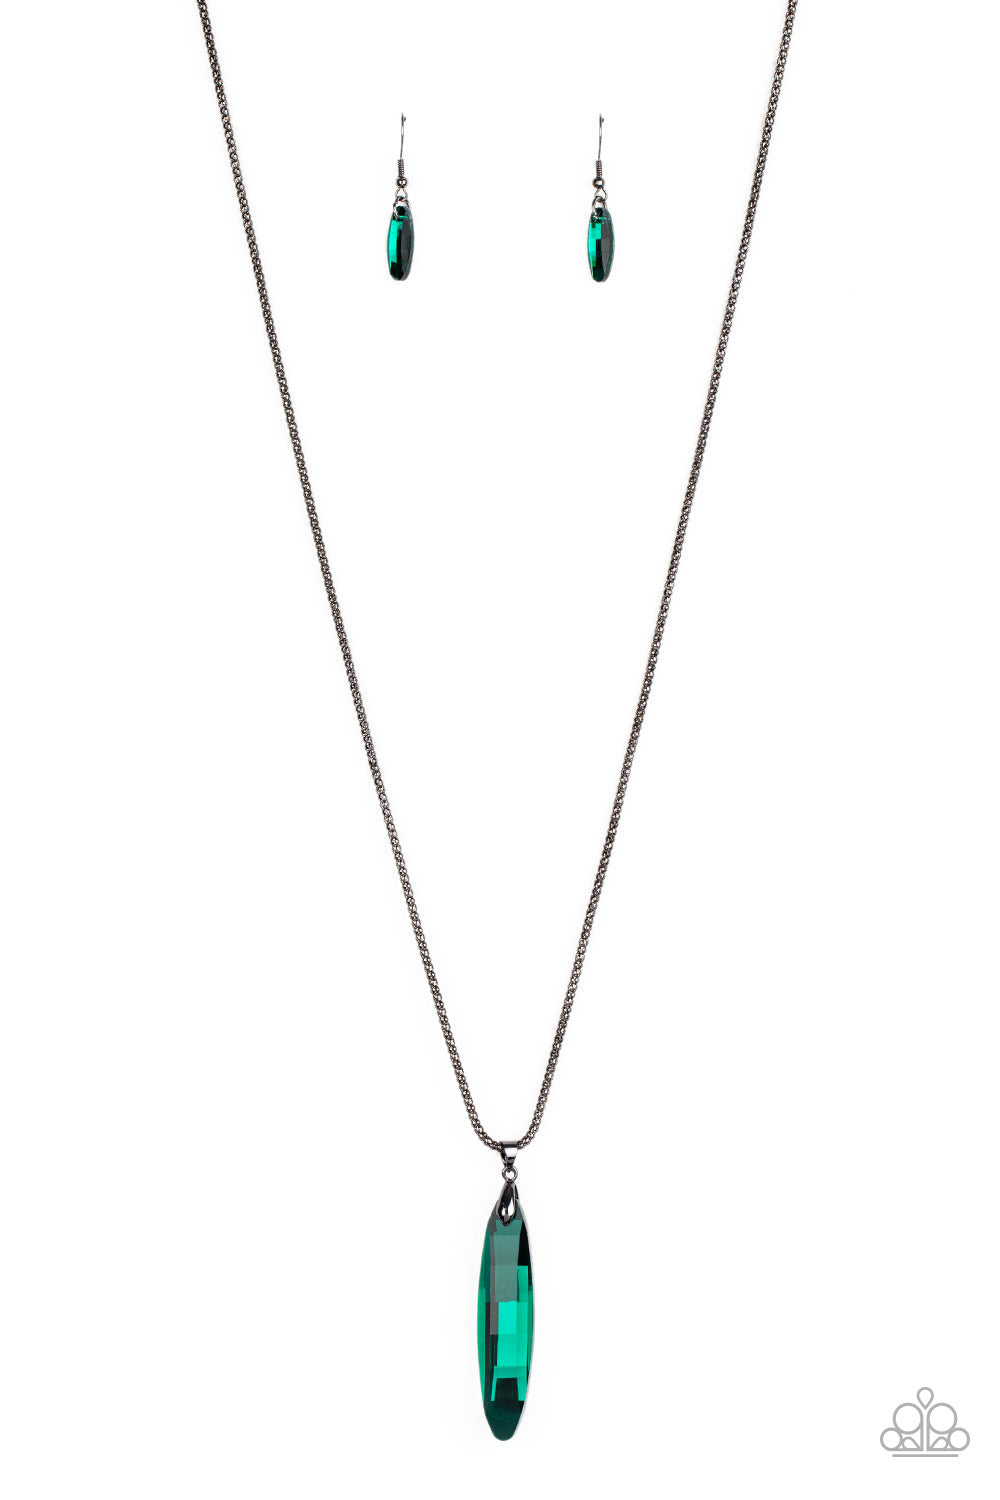 five-dollar-jewelry-meteor-shower-green-necklace-paparazzi-accessories